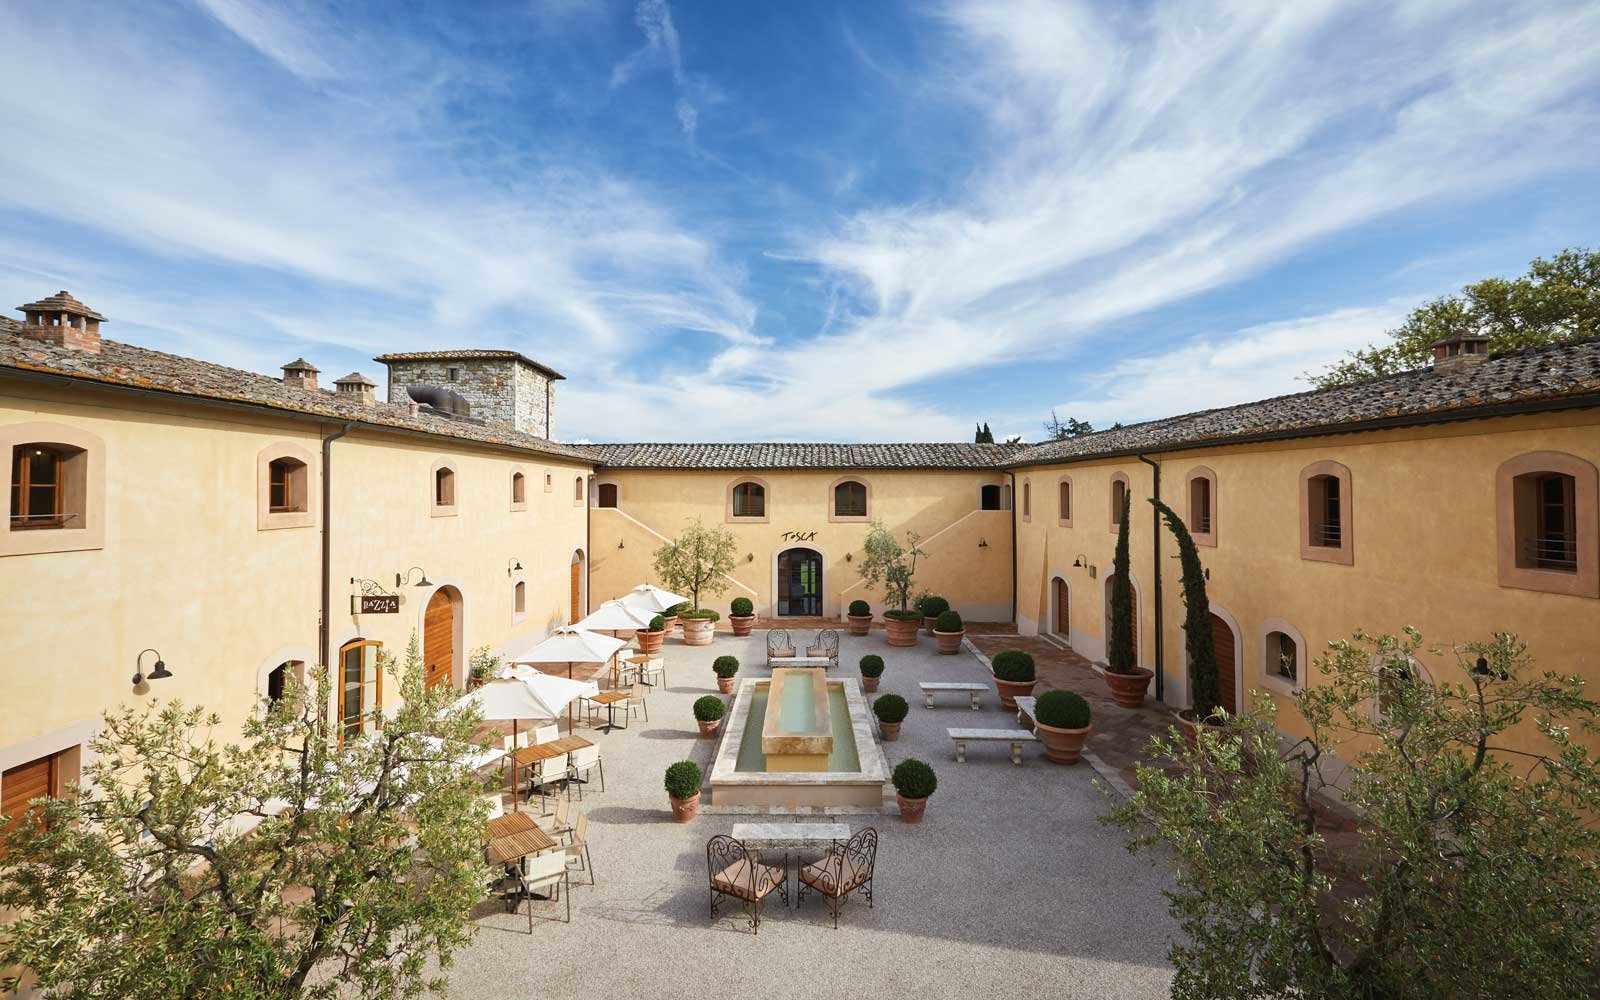 Courtyard at the Castello di Casole